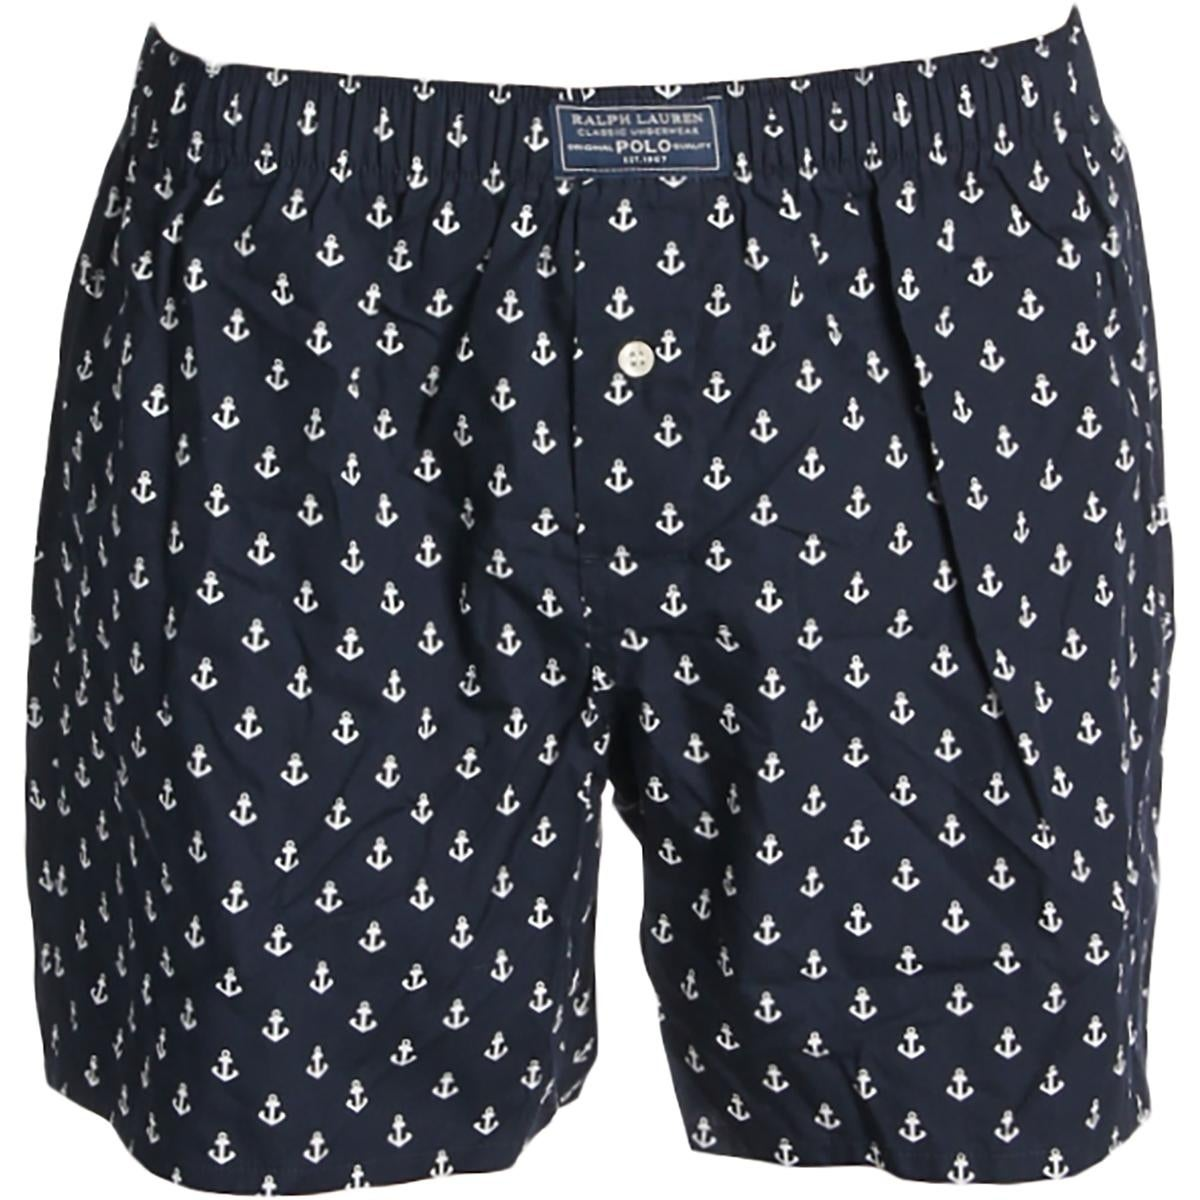 687e16d4145f Shop Polo Ralph Lauren Mens Boxers Nautical Print Cotton - S - Free  Shipping On Orders Over $45 - Overstock - 21602788